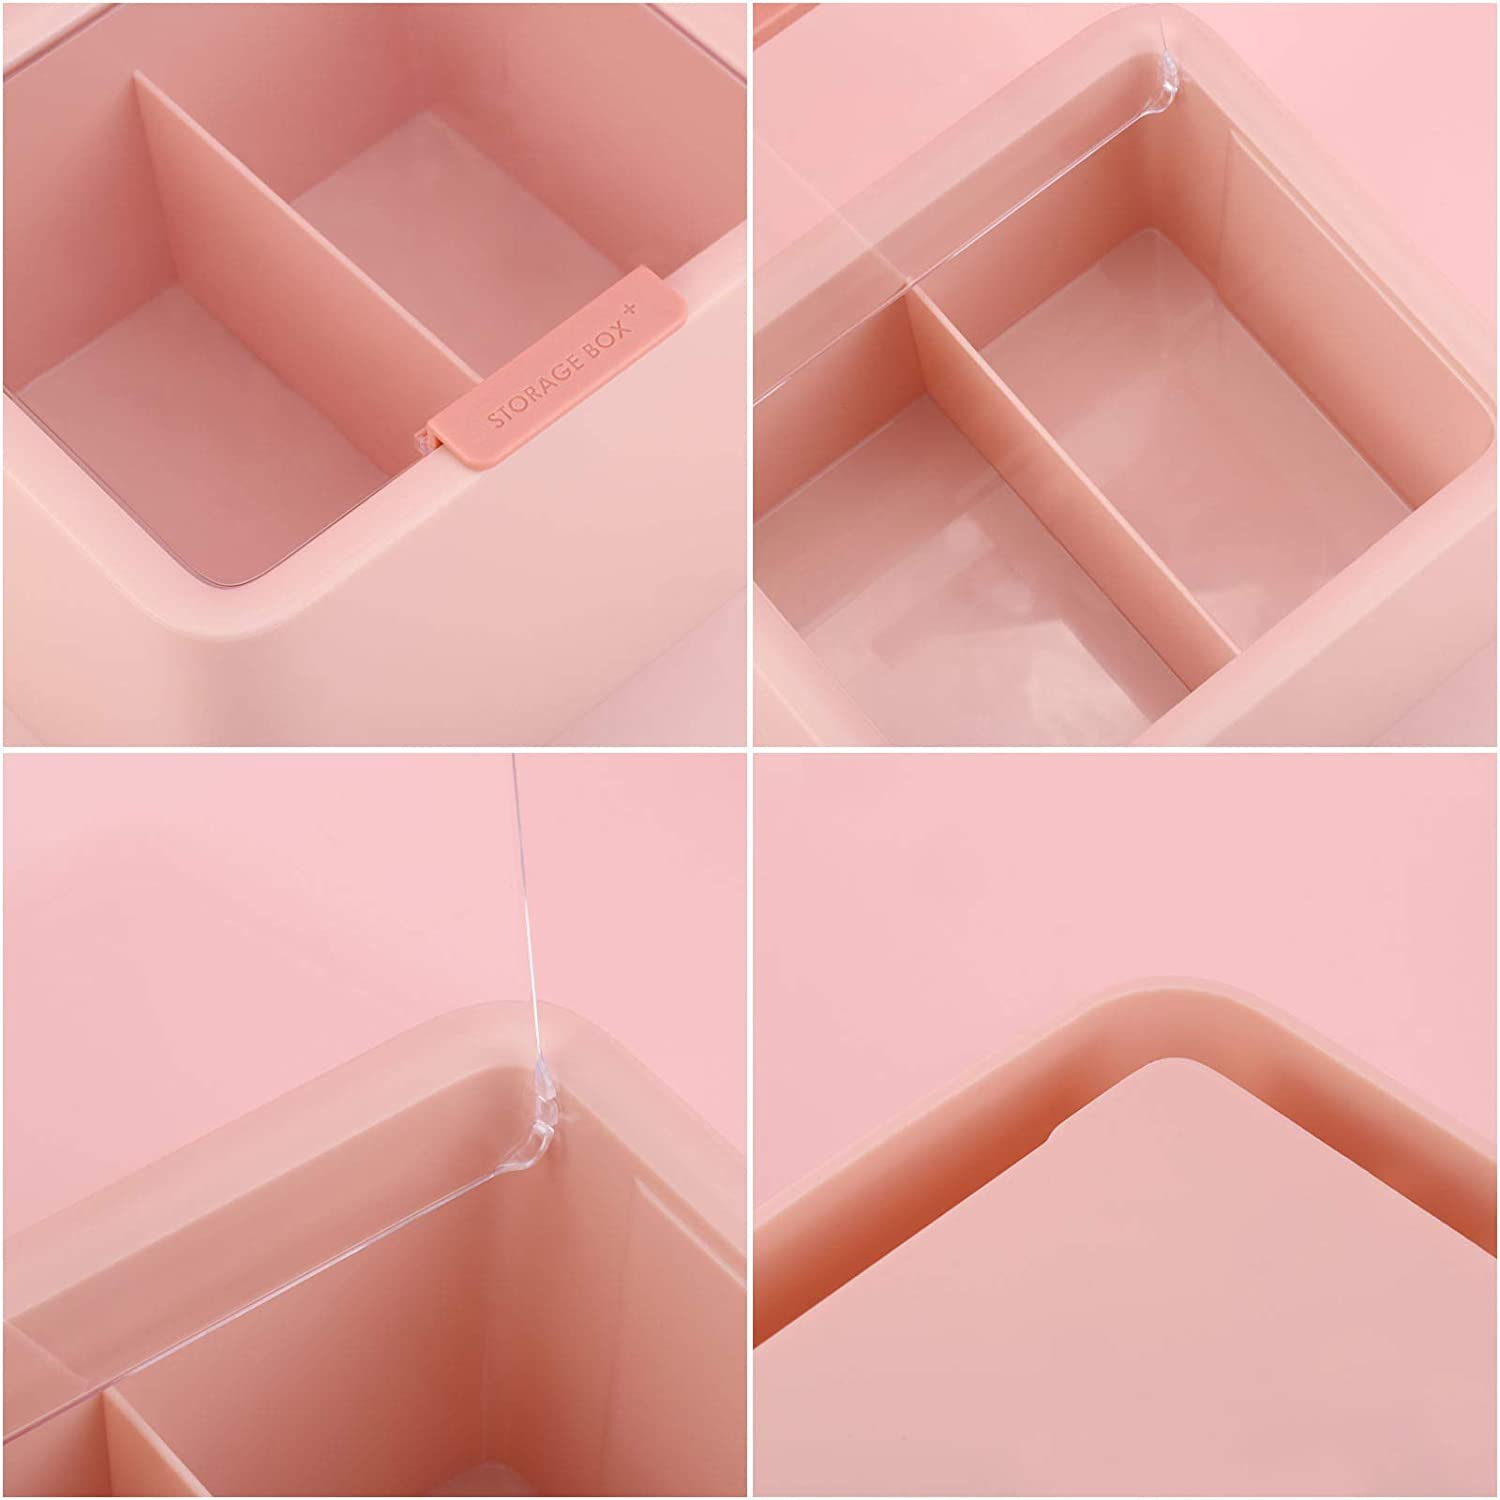 Tecbeauty 2 Slot Cotton Swab Ball Qtip Holder Jar Plastic Container Dispenser Box with Lid for Bathroom Home Storage